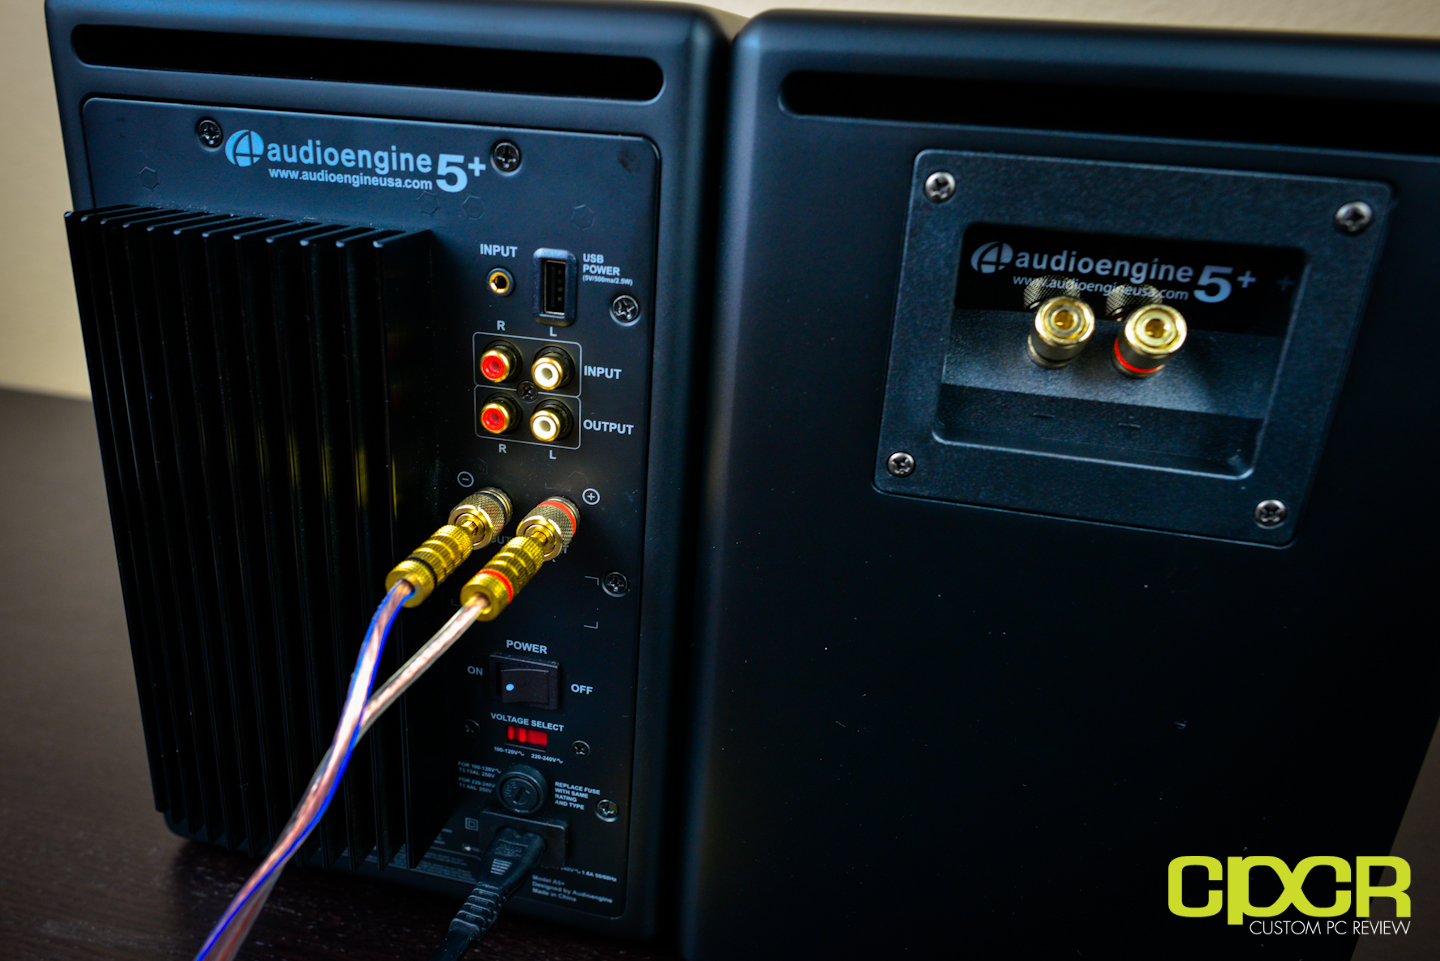 Audioengine 5 A5 Speakers And D1 Dac Review Custom Pc Speaker Jacks Wiring Includes A 123 Ft Wire